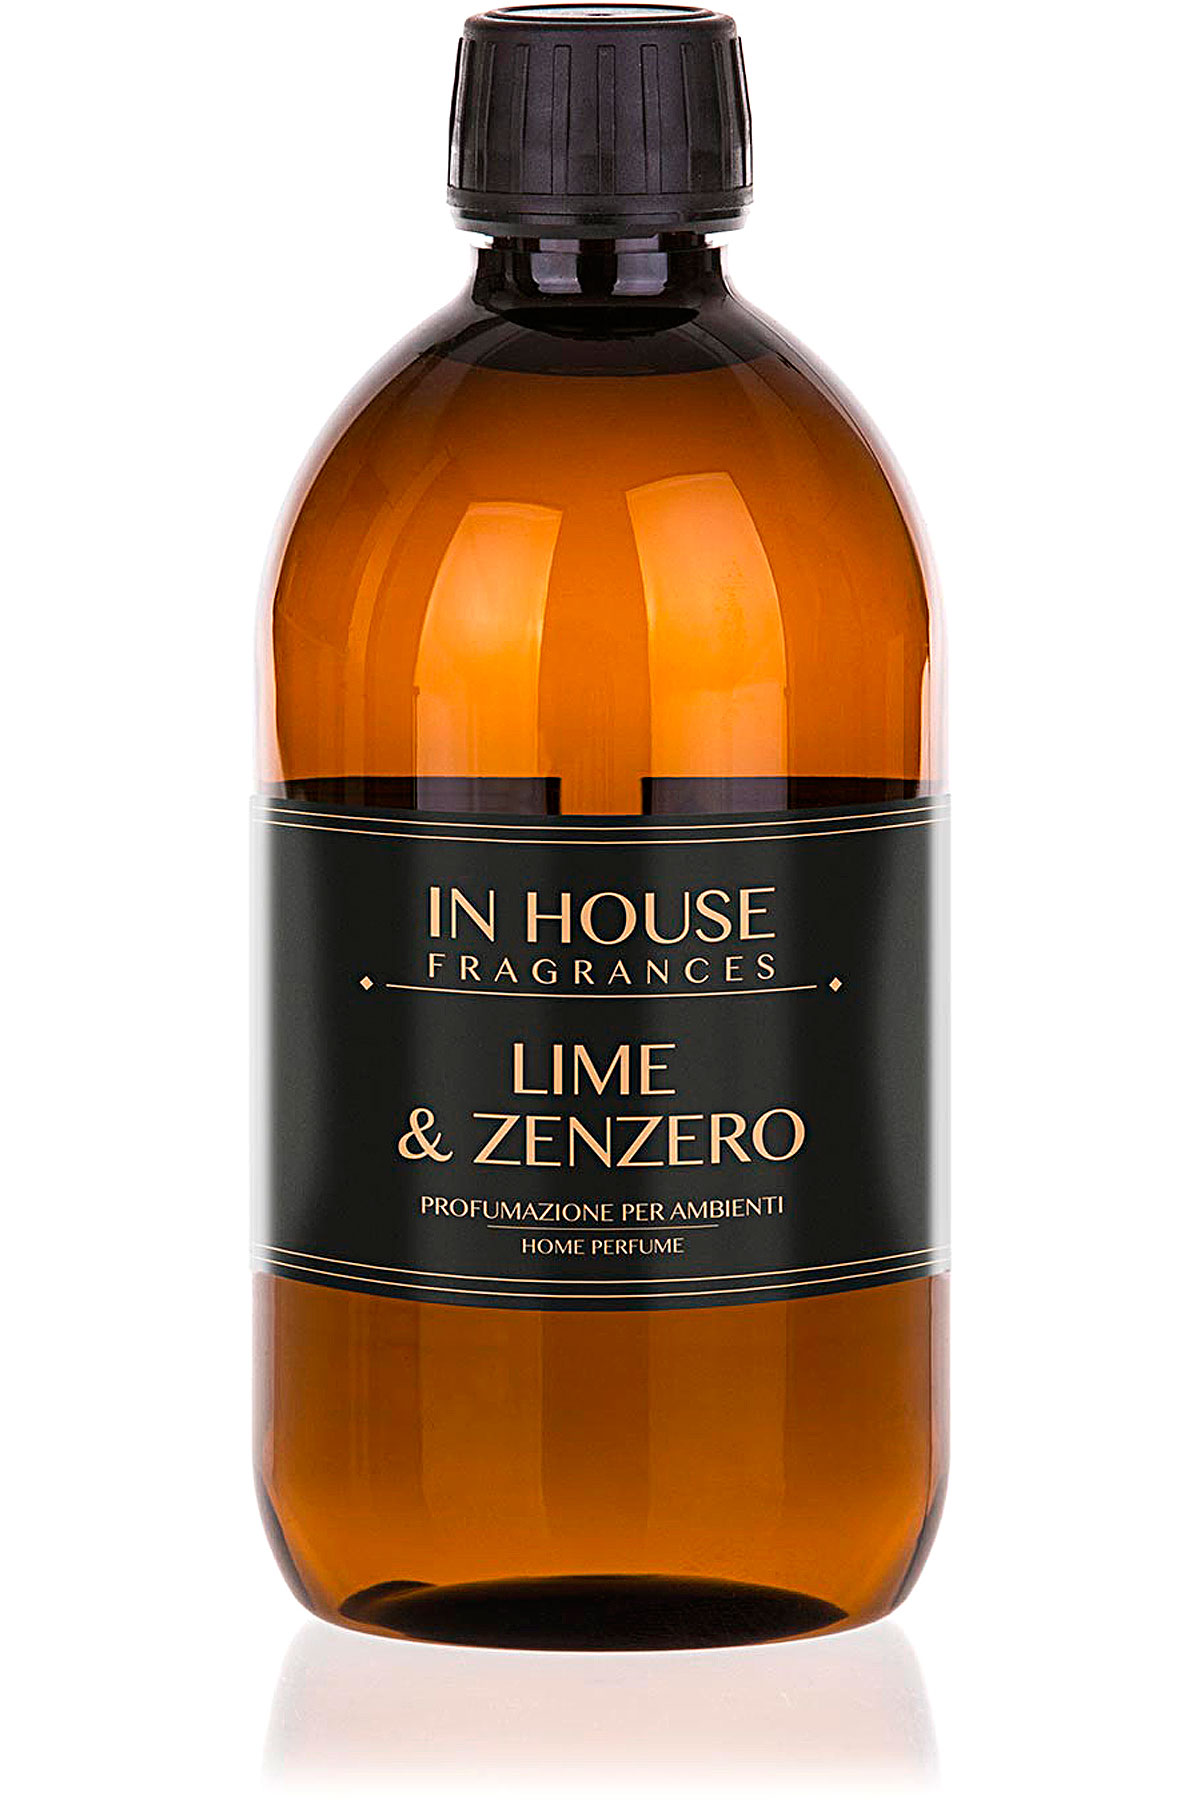 In House Fragrances Home Scents for Men, Lime & Zenzero - Refill - 500 Ml, 2019, 500 ml